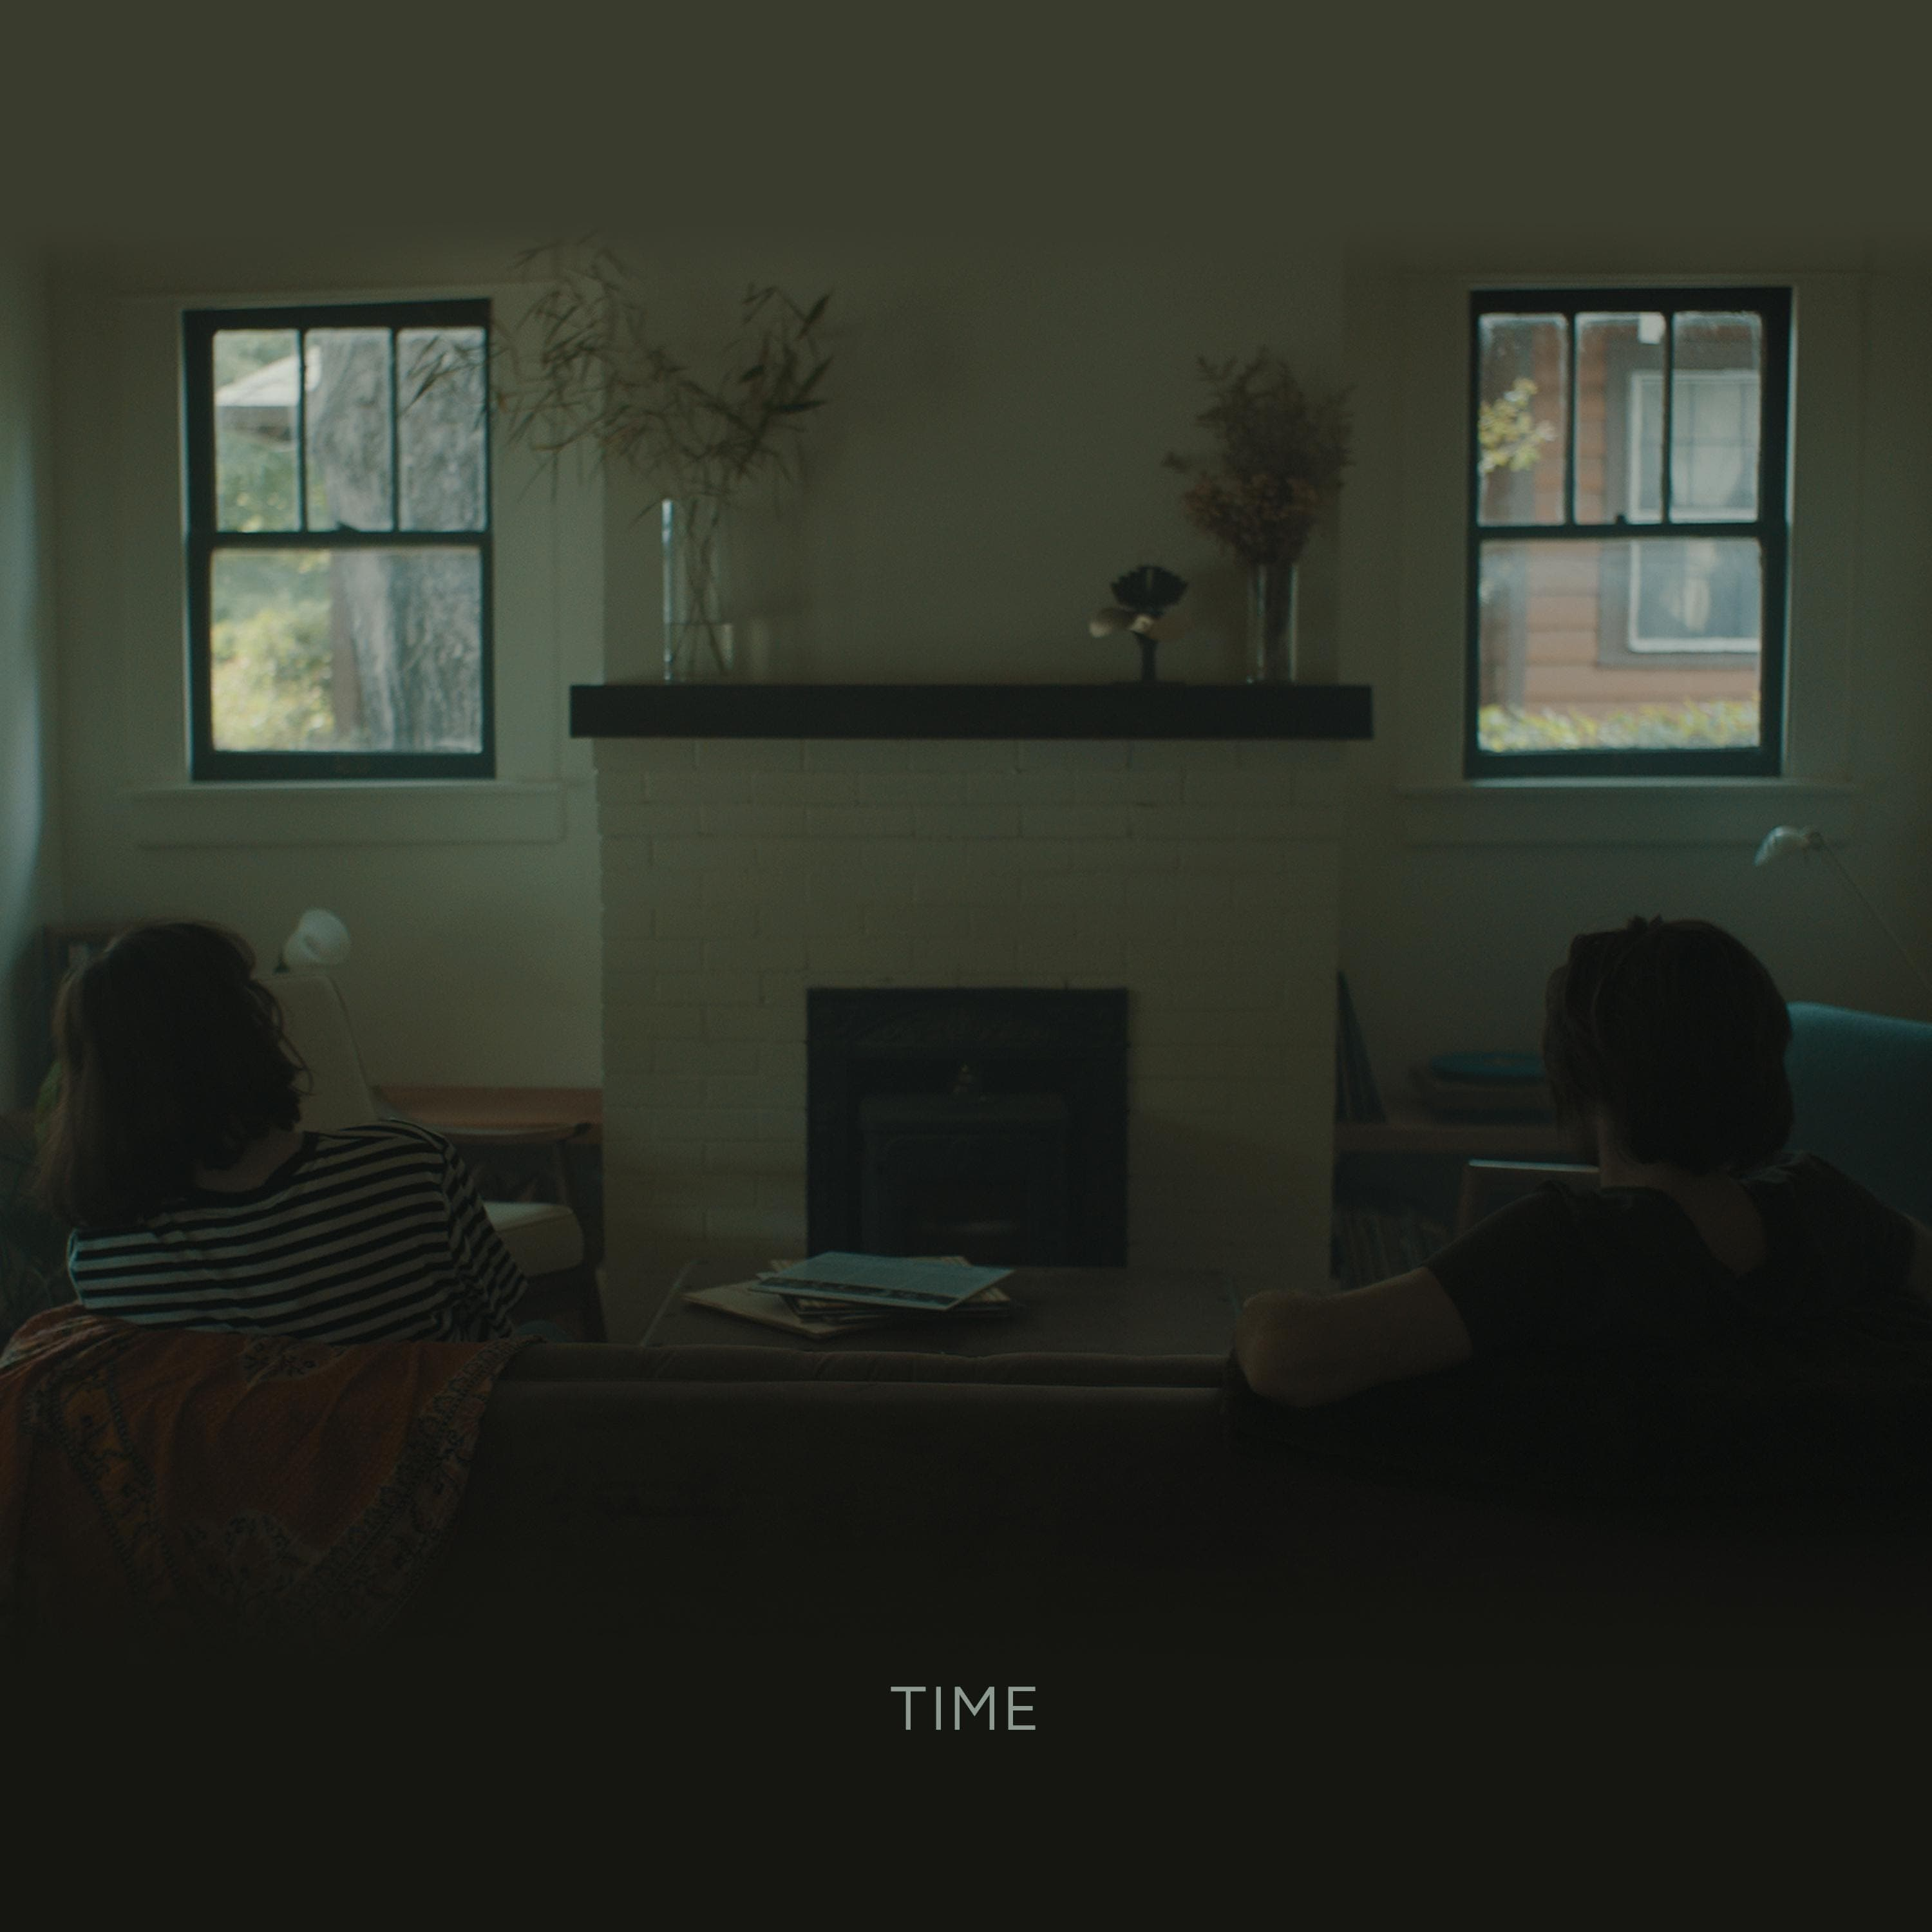 Time - NF